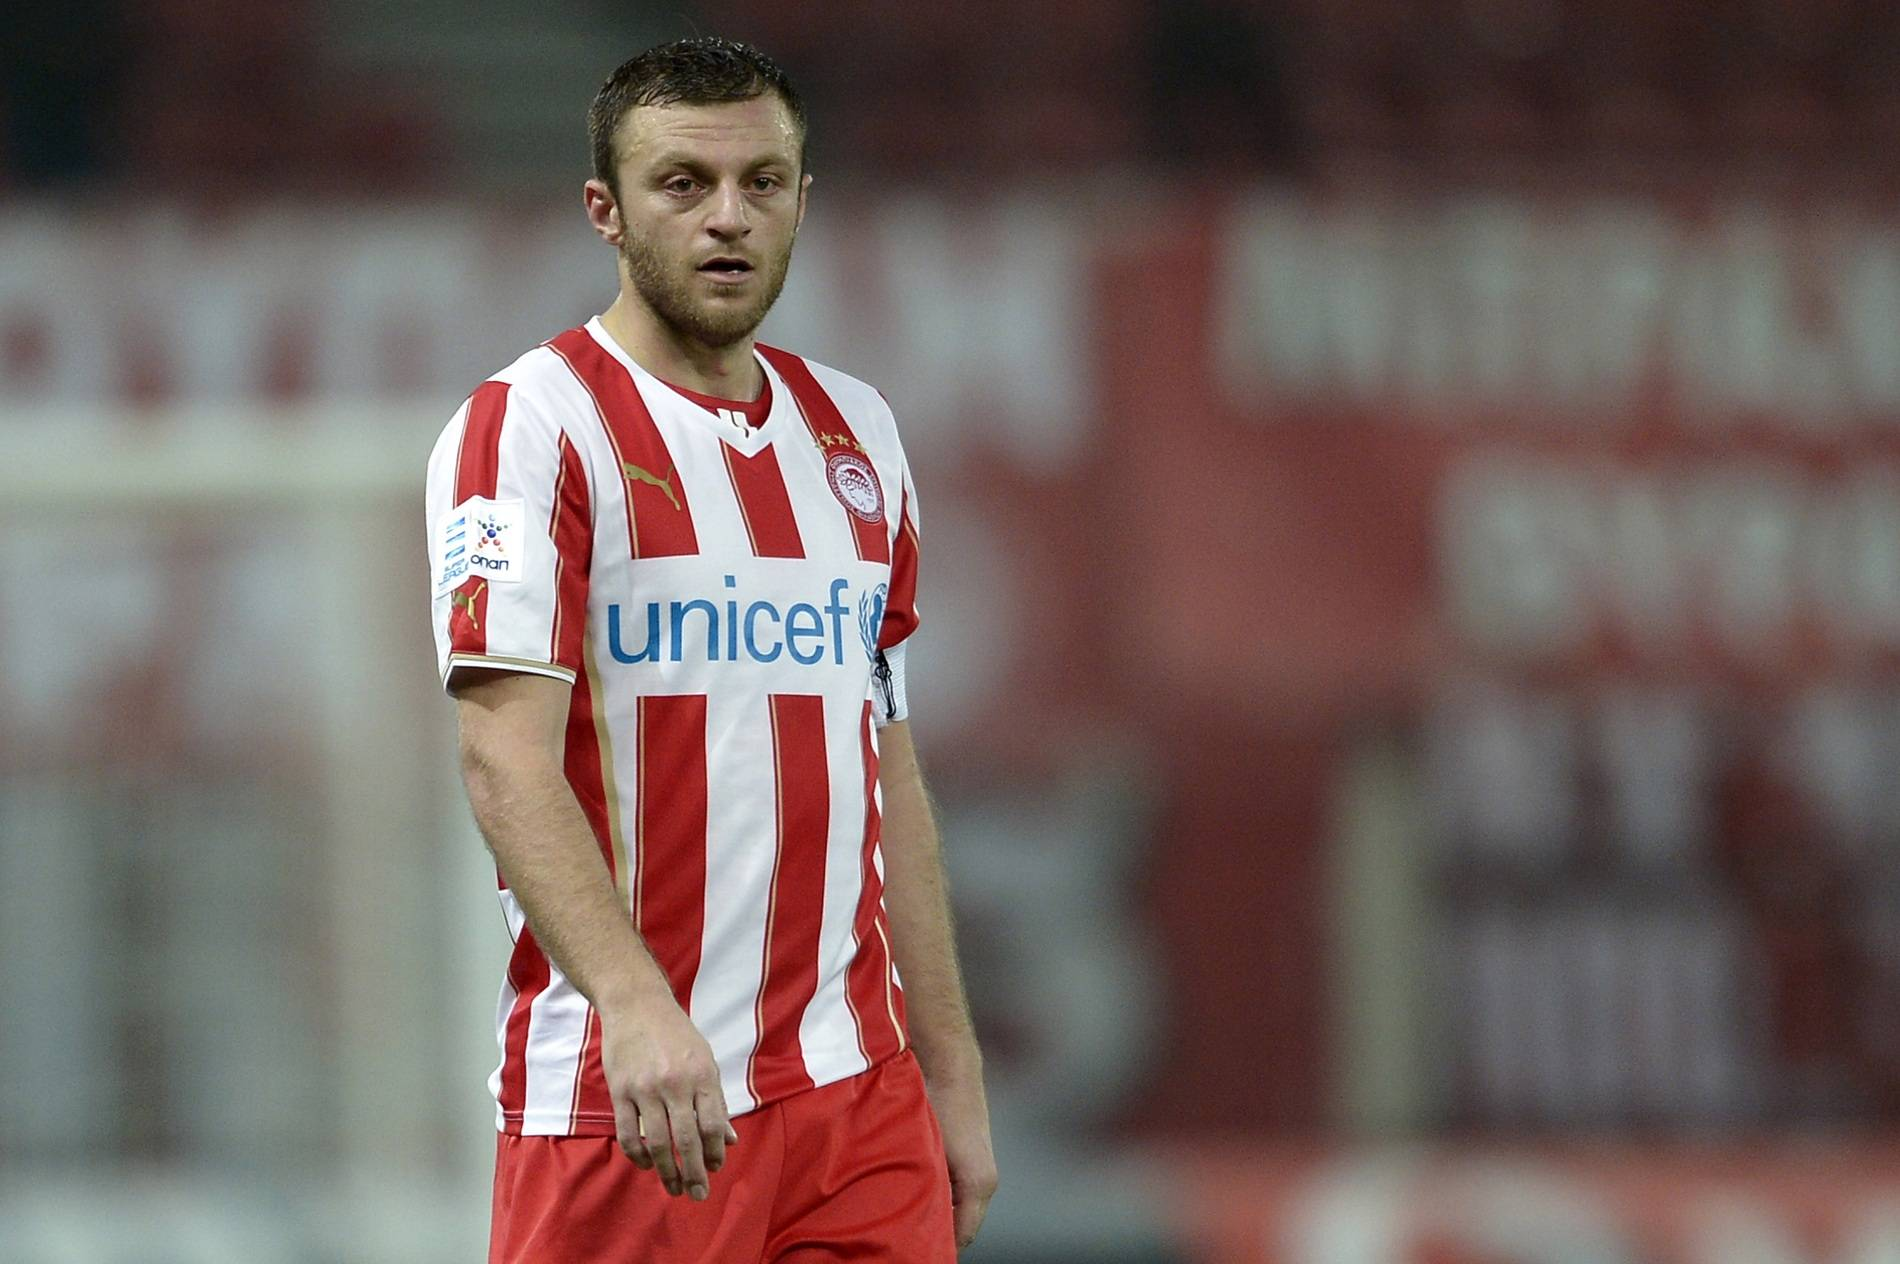 Greece defender Avraam Papadopoulos joins Brisbane Roar